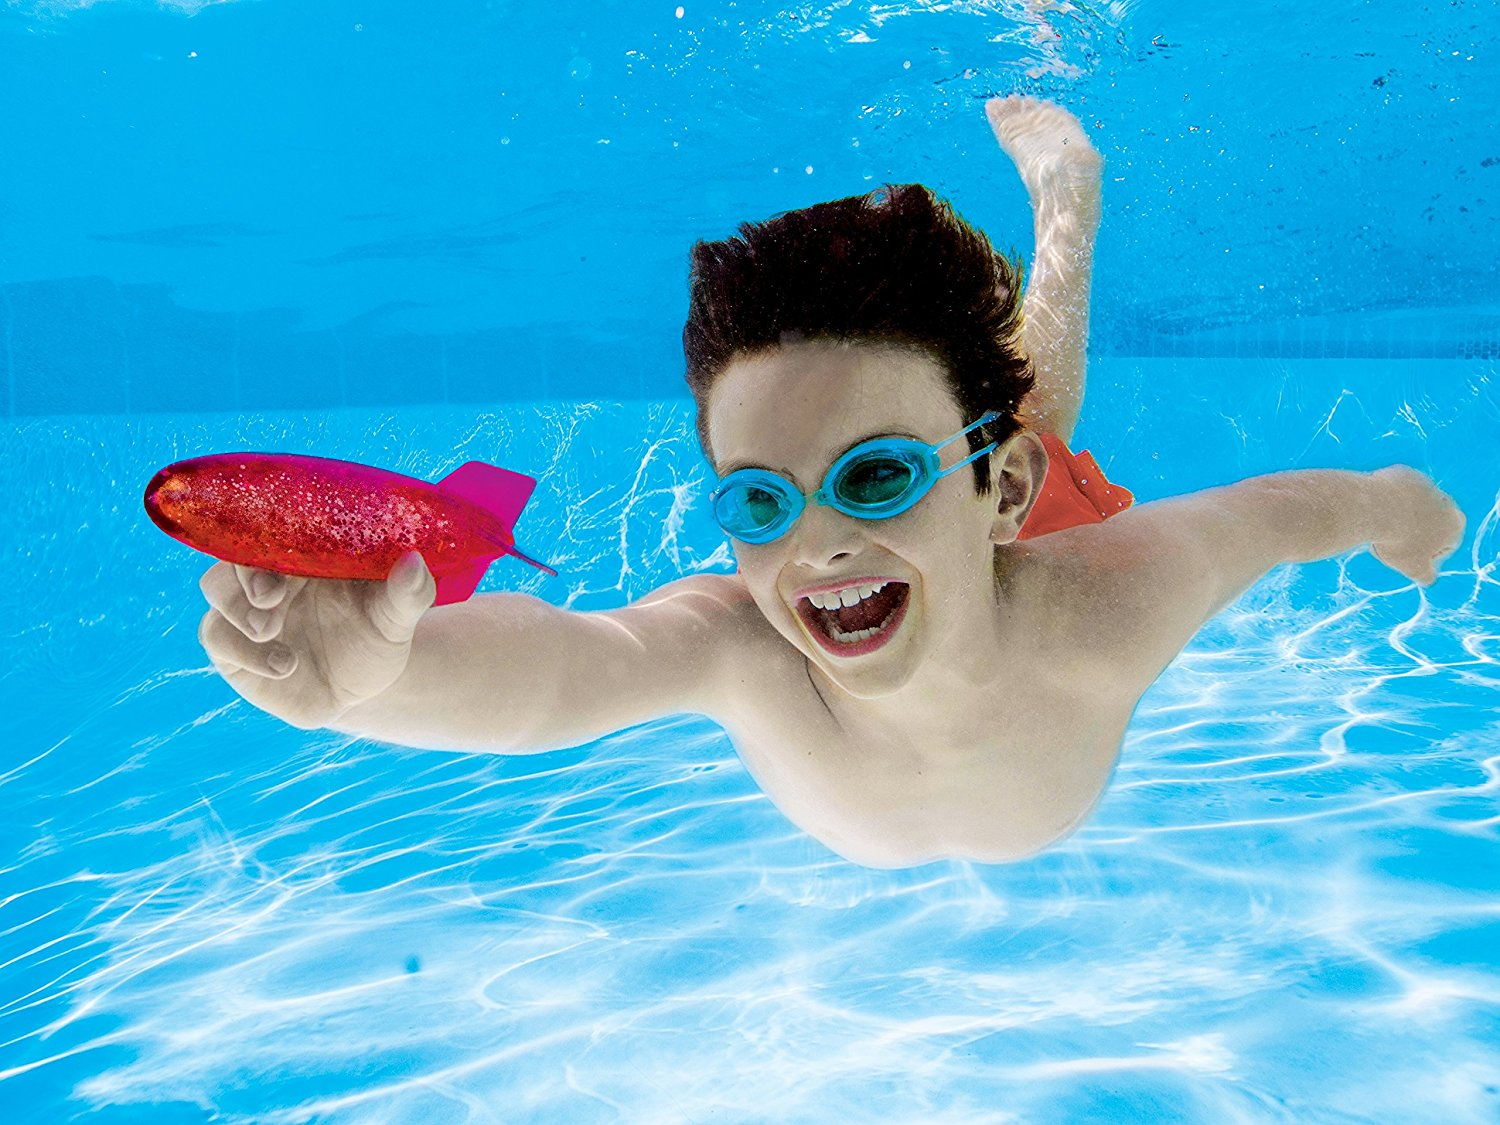 prettybaby-underwater-torpedo-toy-water-fun